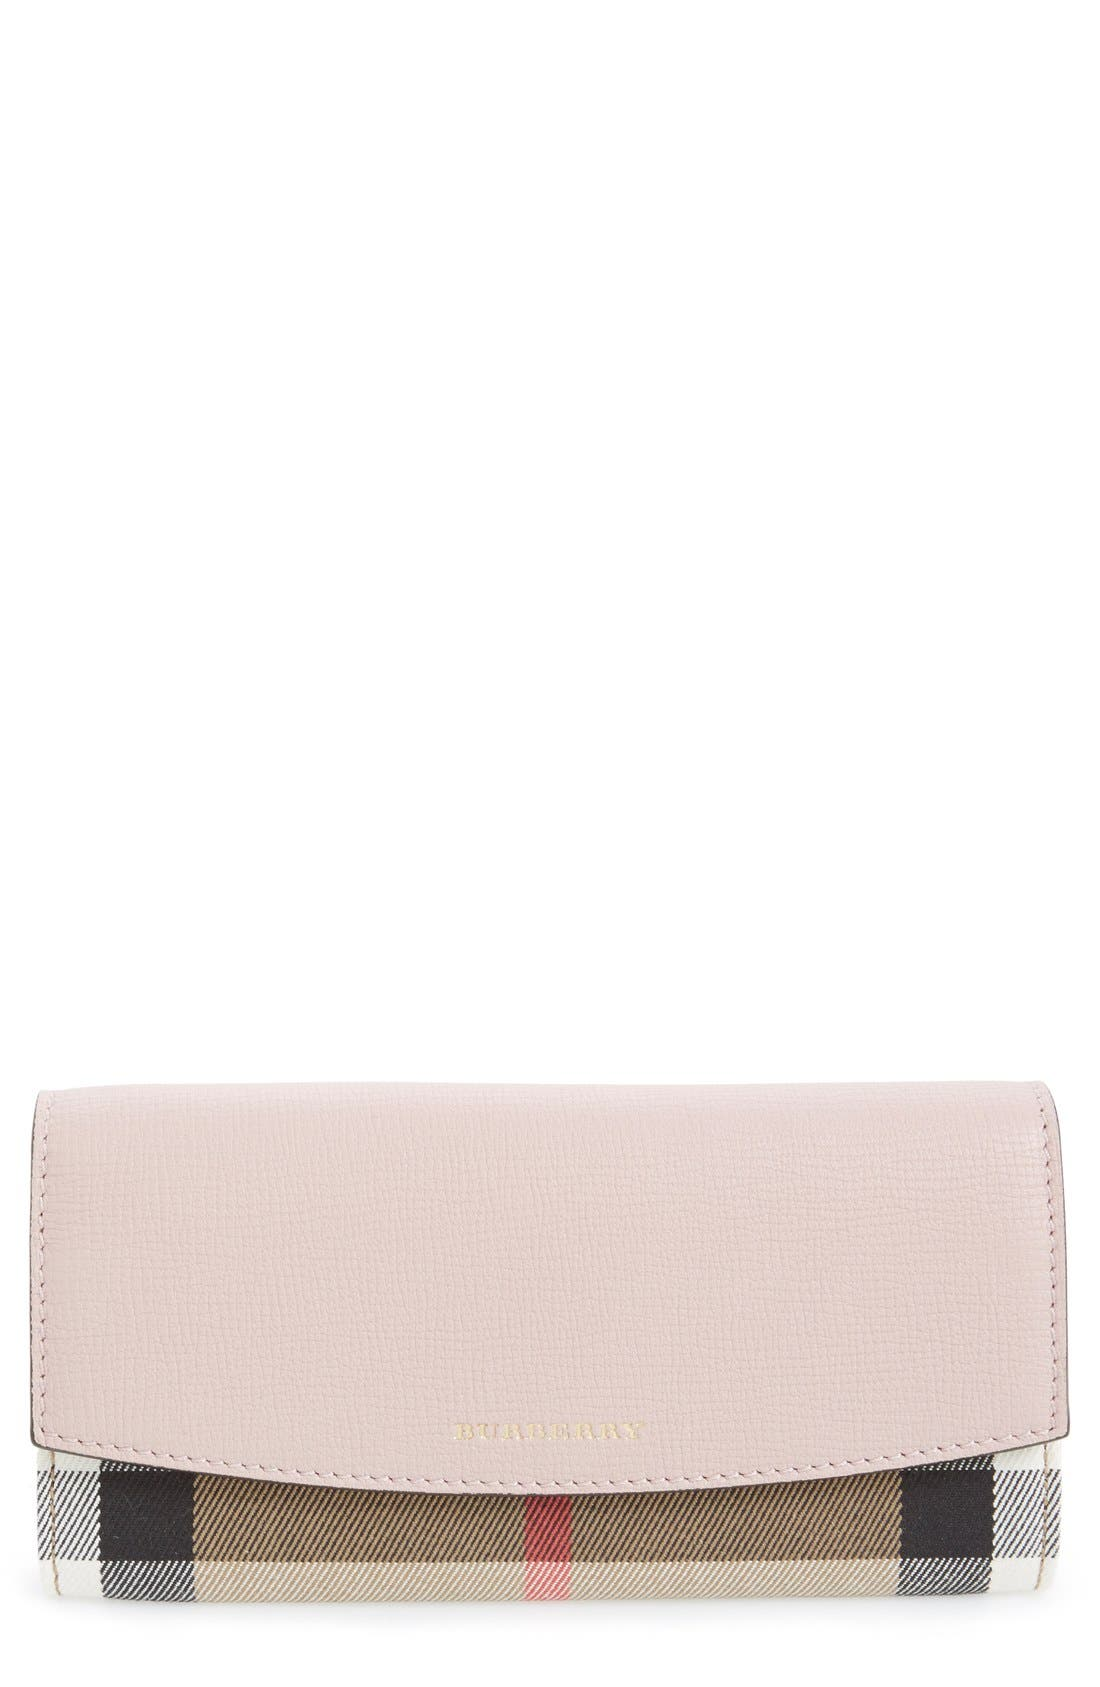 'Porter - Check' Continental Wallet,                         Main,                         color, Pale Orchid